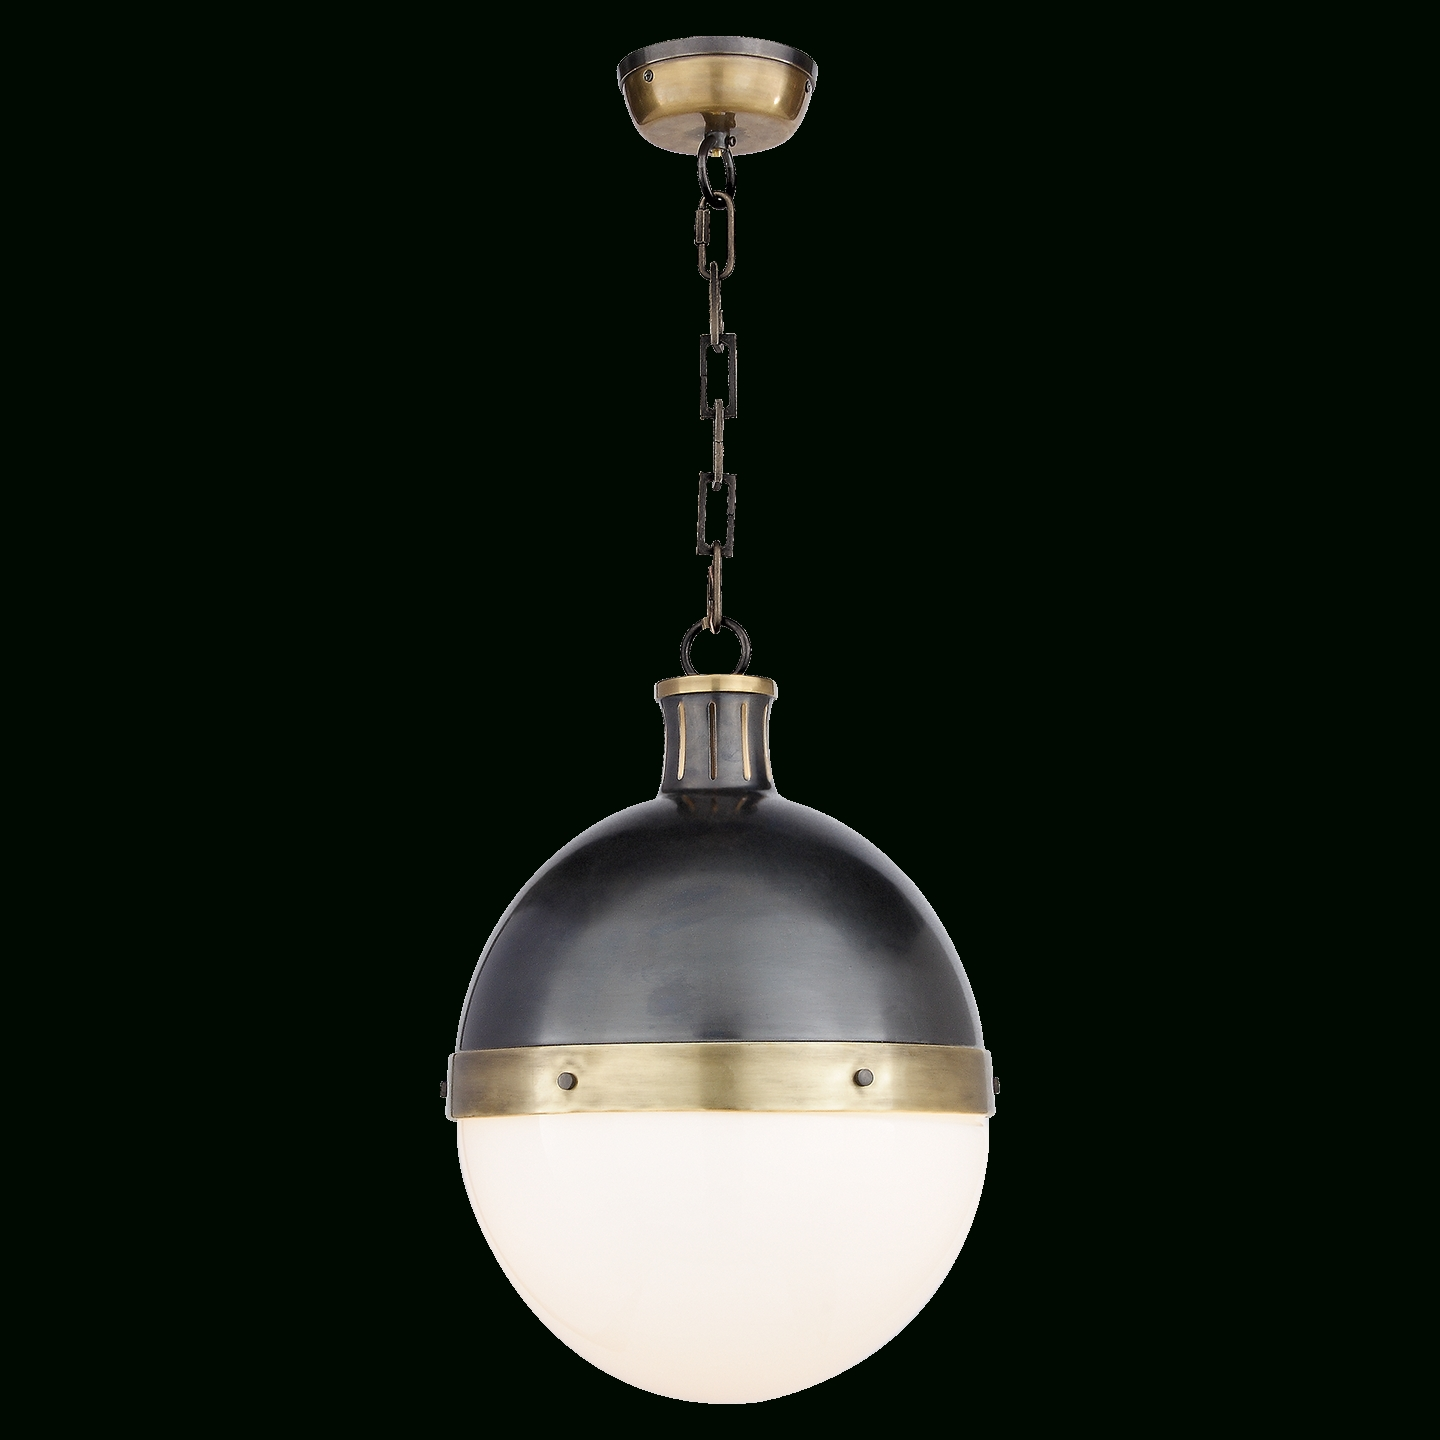 Hicks Large Pendant | Circa Lighting throughout Large Hicks Pendants (Image 7 of 15)